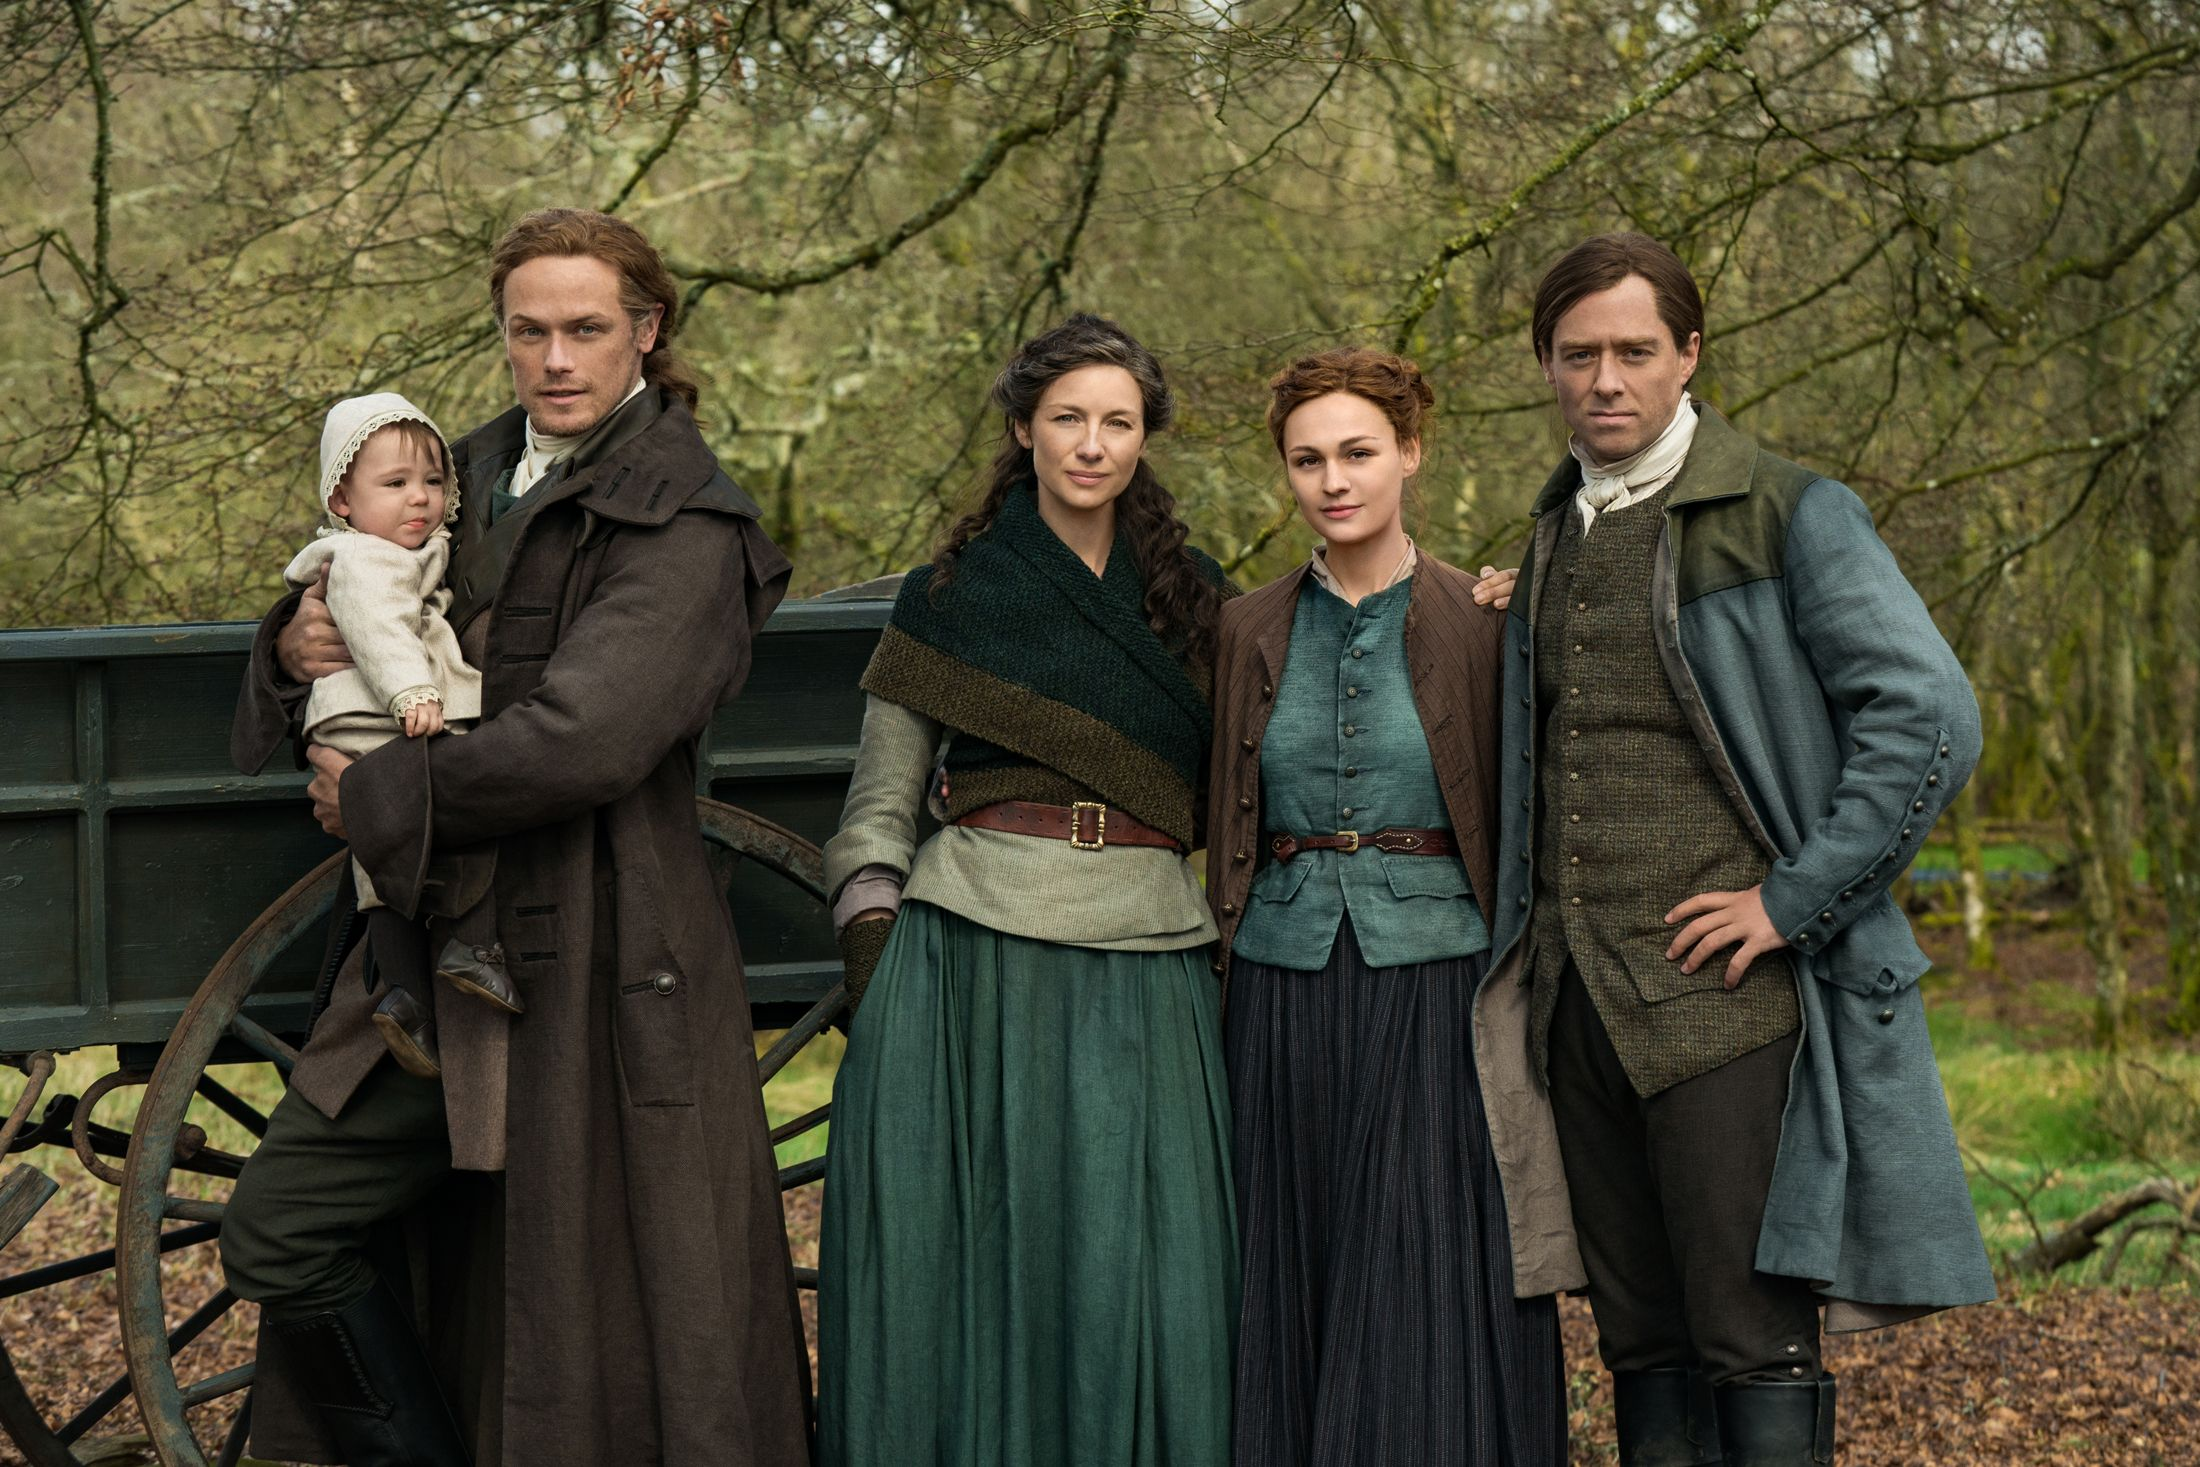 University of Glasgow to host conference on hit TV show Outlander